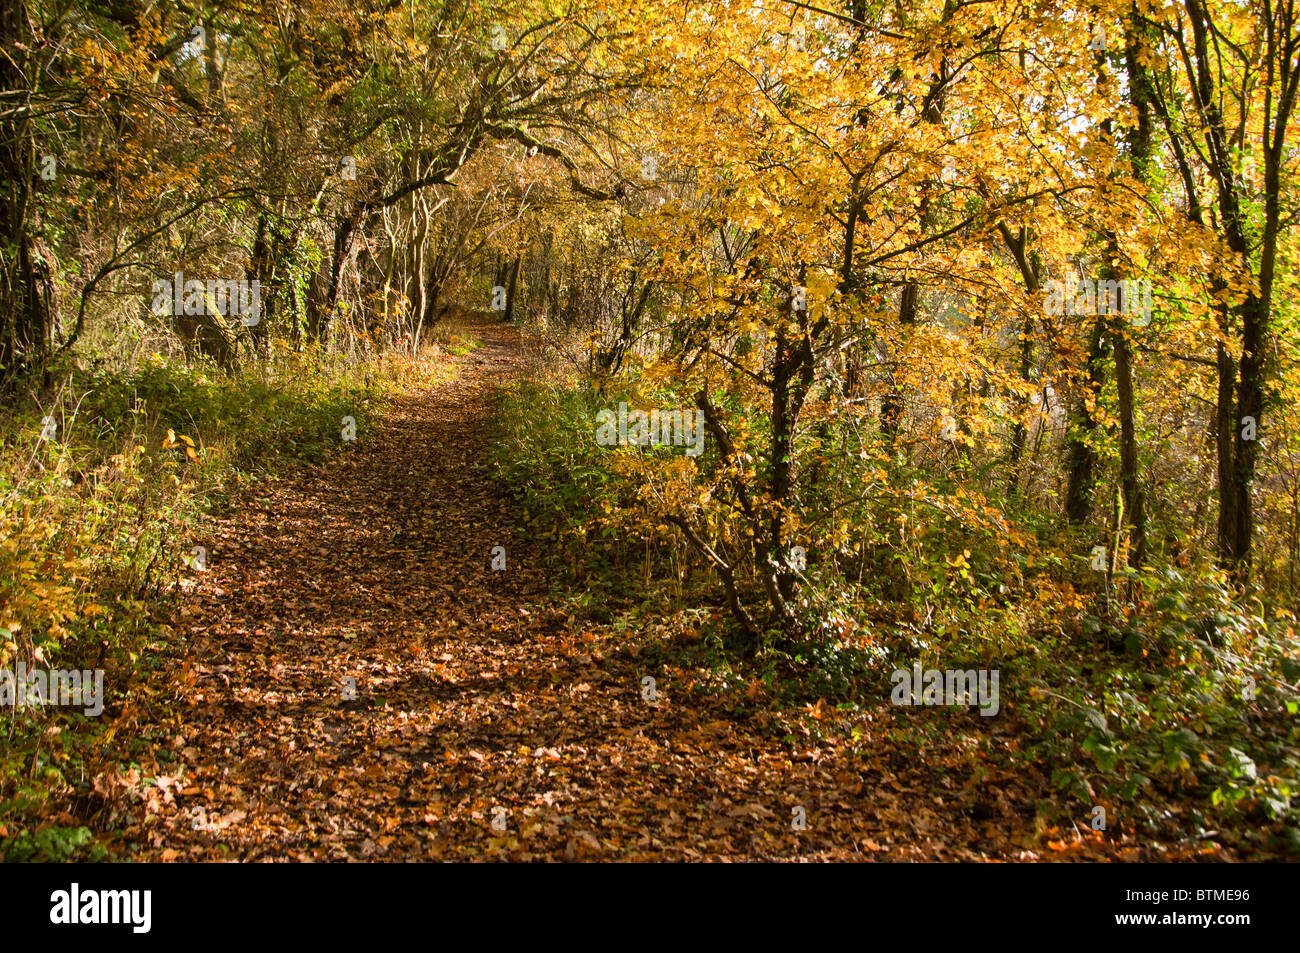 autumn-leaves-cover-a-forest-path-in-arr